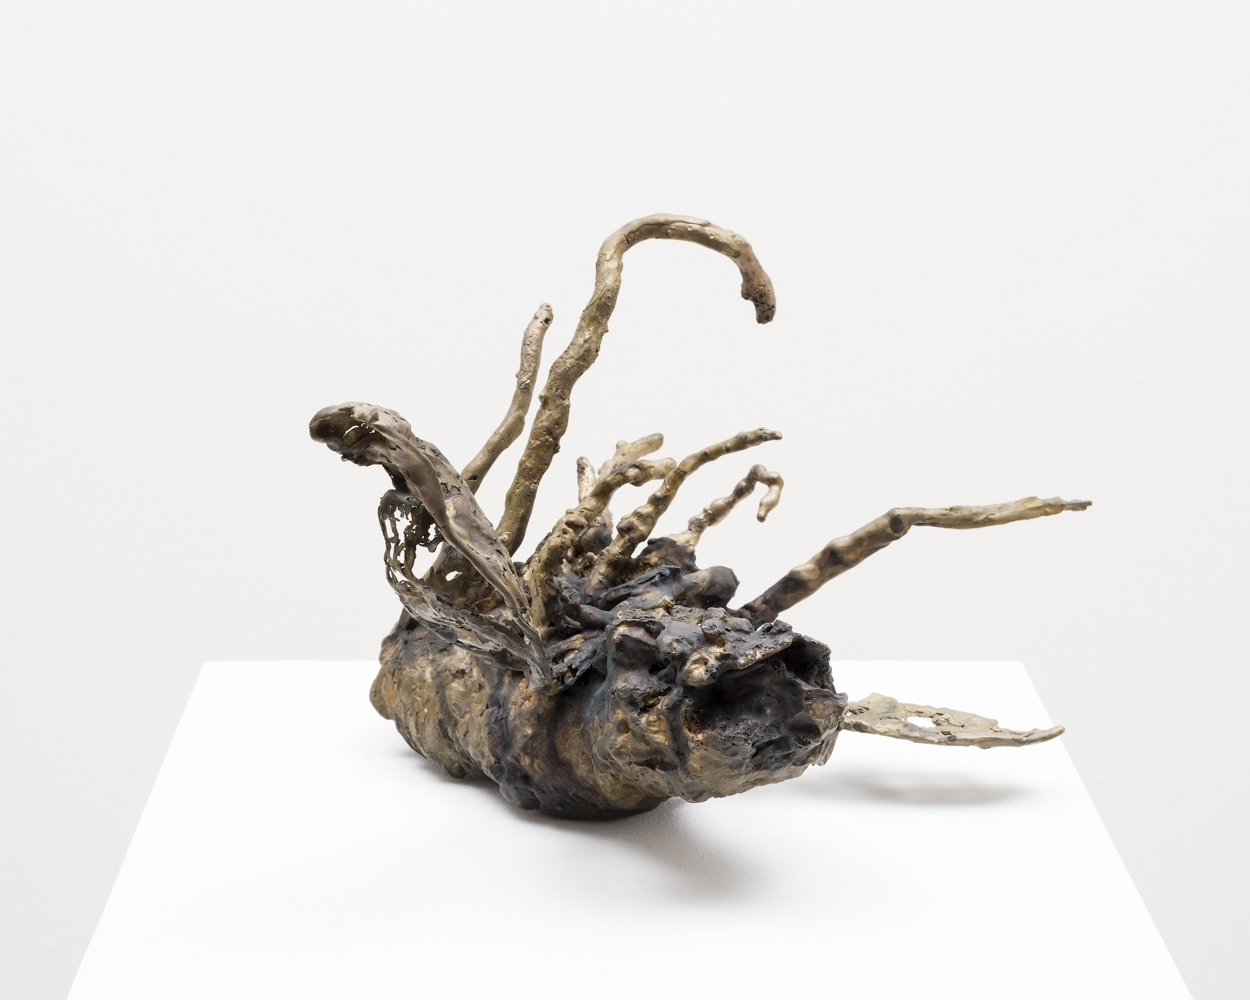 Small cast bronze sculpture of dead insect by Michele Oka Doner.